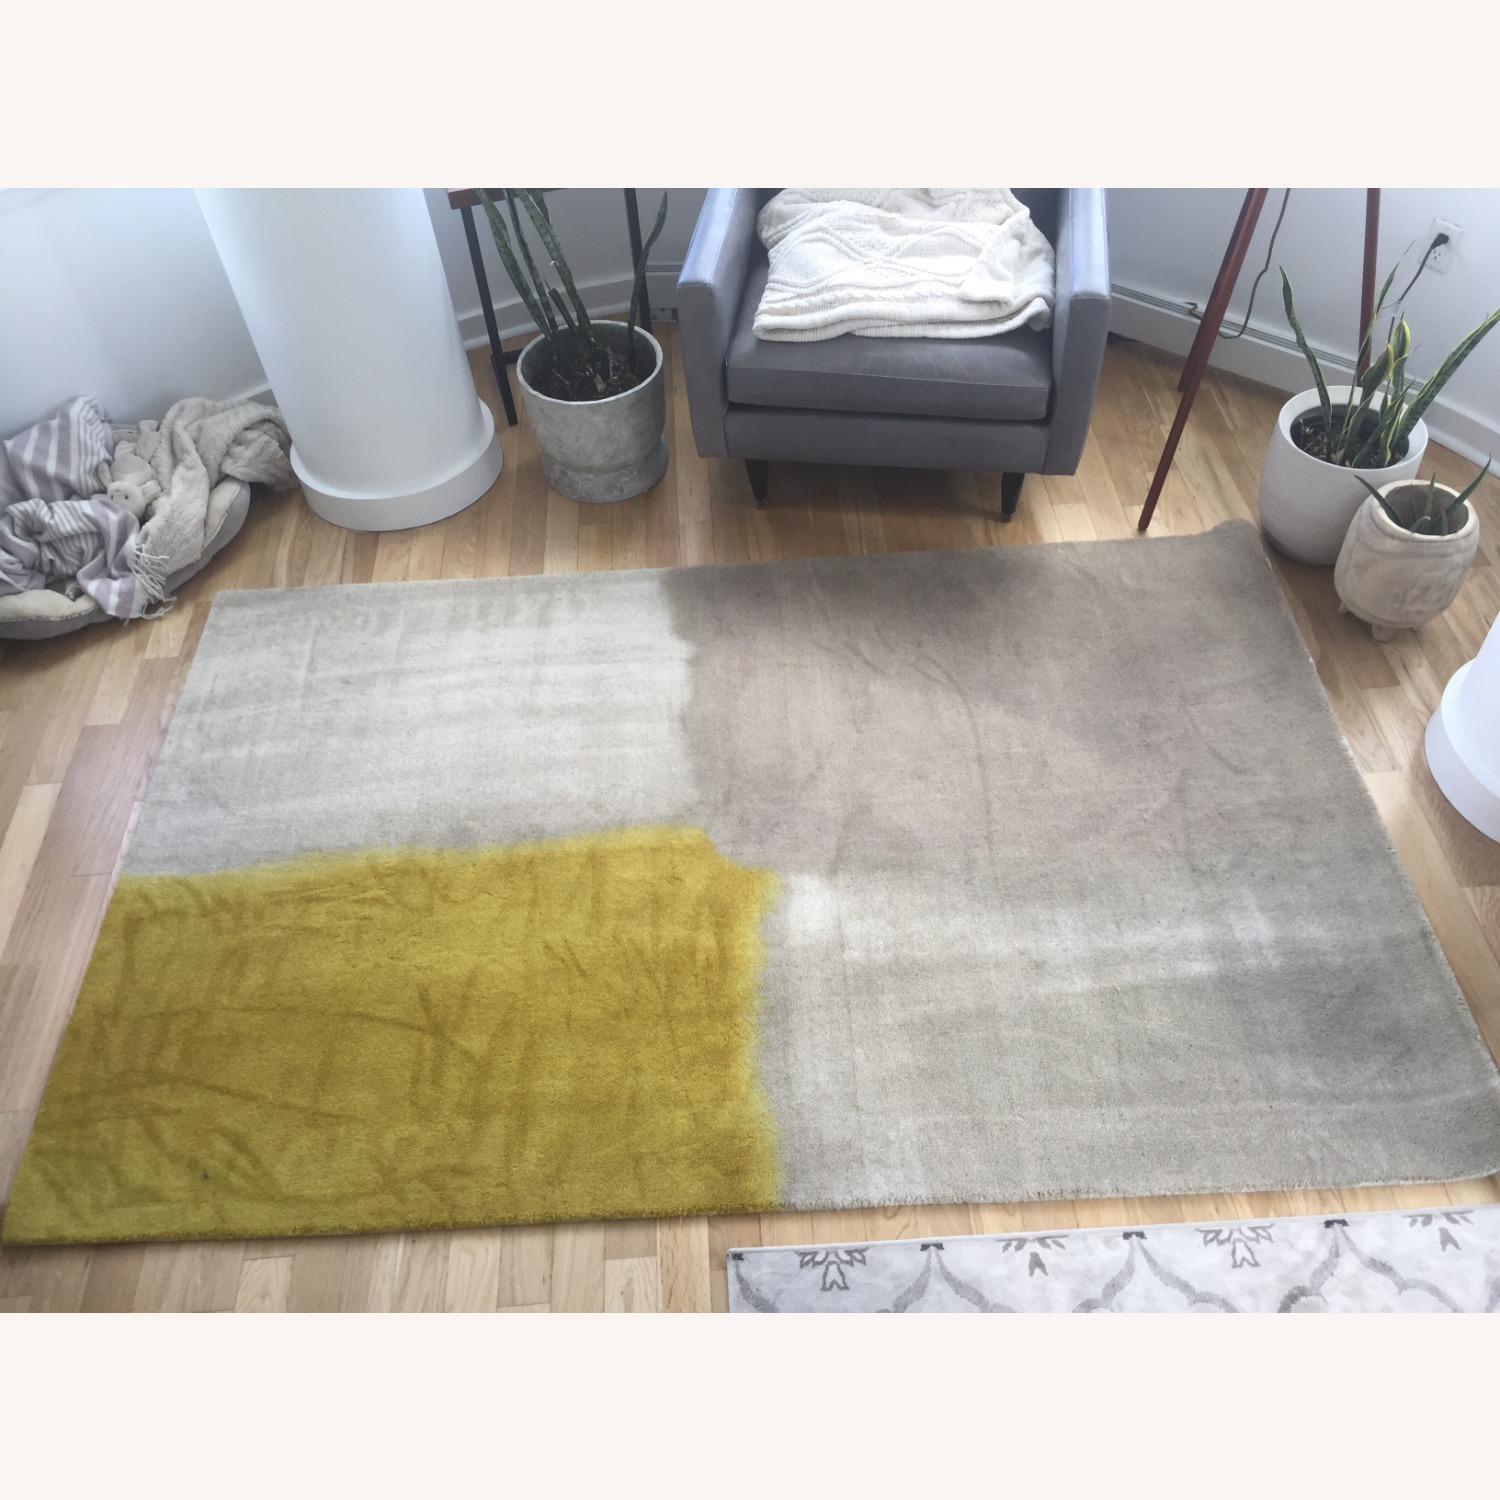 West Elm Area Rug 5' x 8' Frost Gray + Yellow - image-3